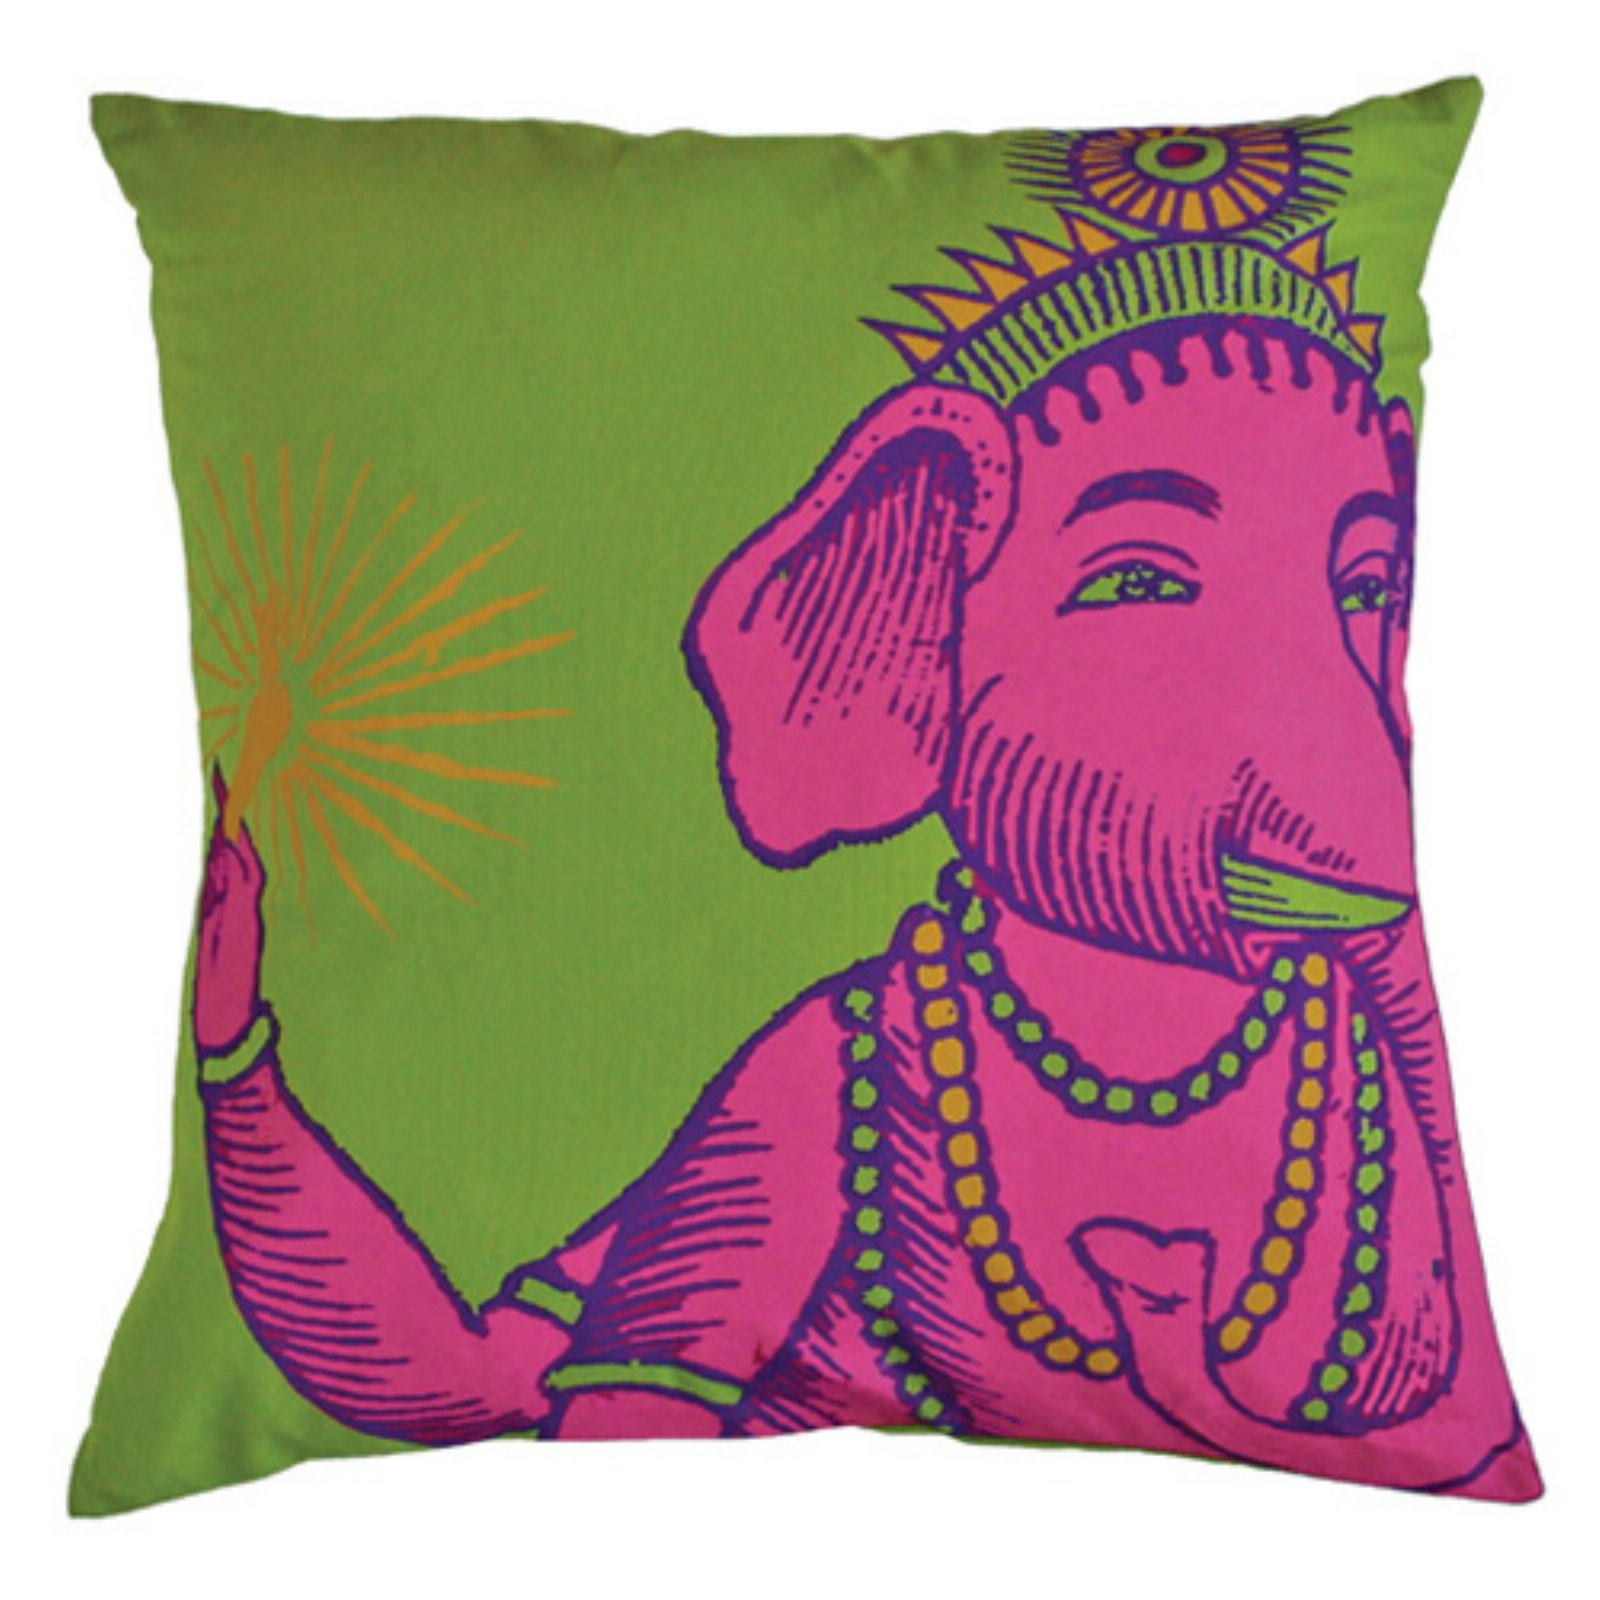 Koko Company Bazaar Lime Decorative Pillow